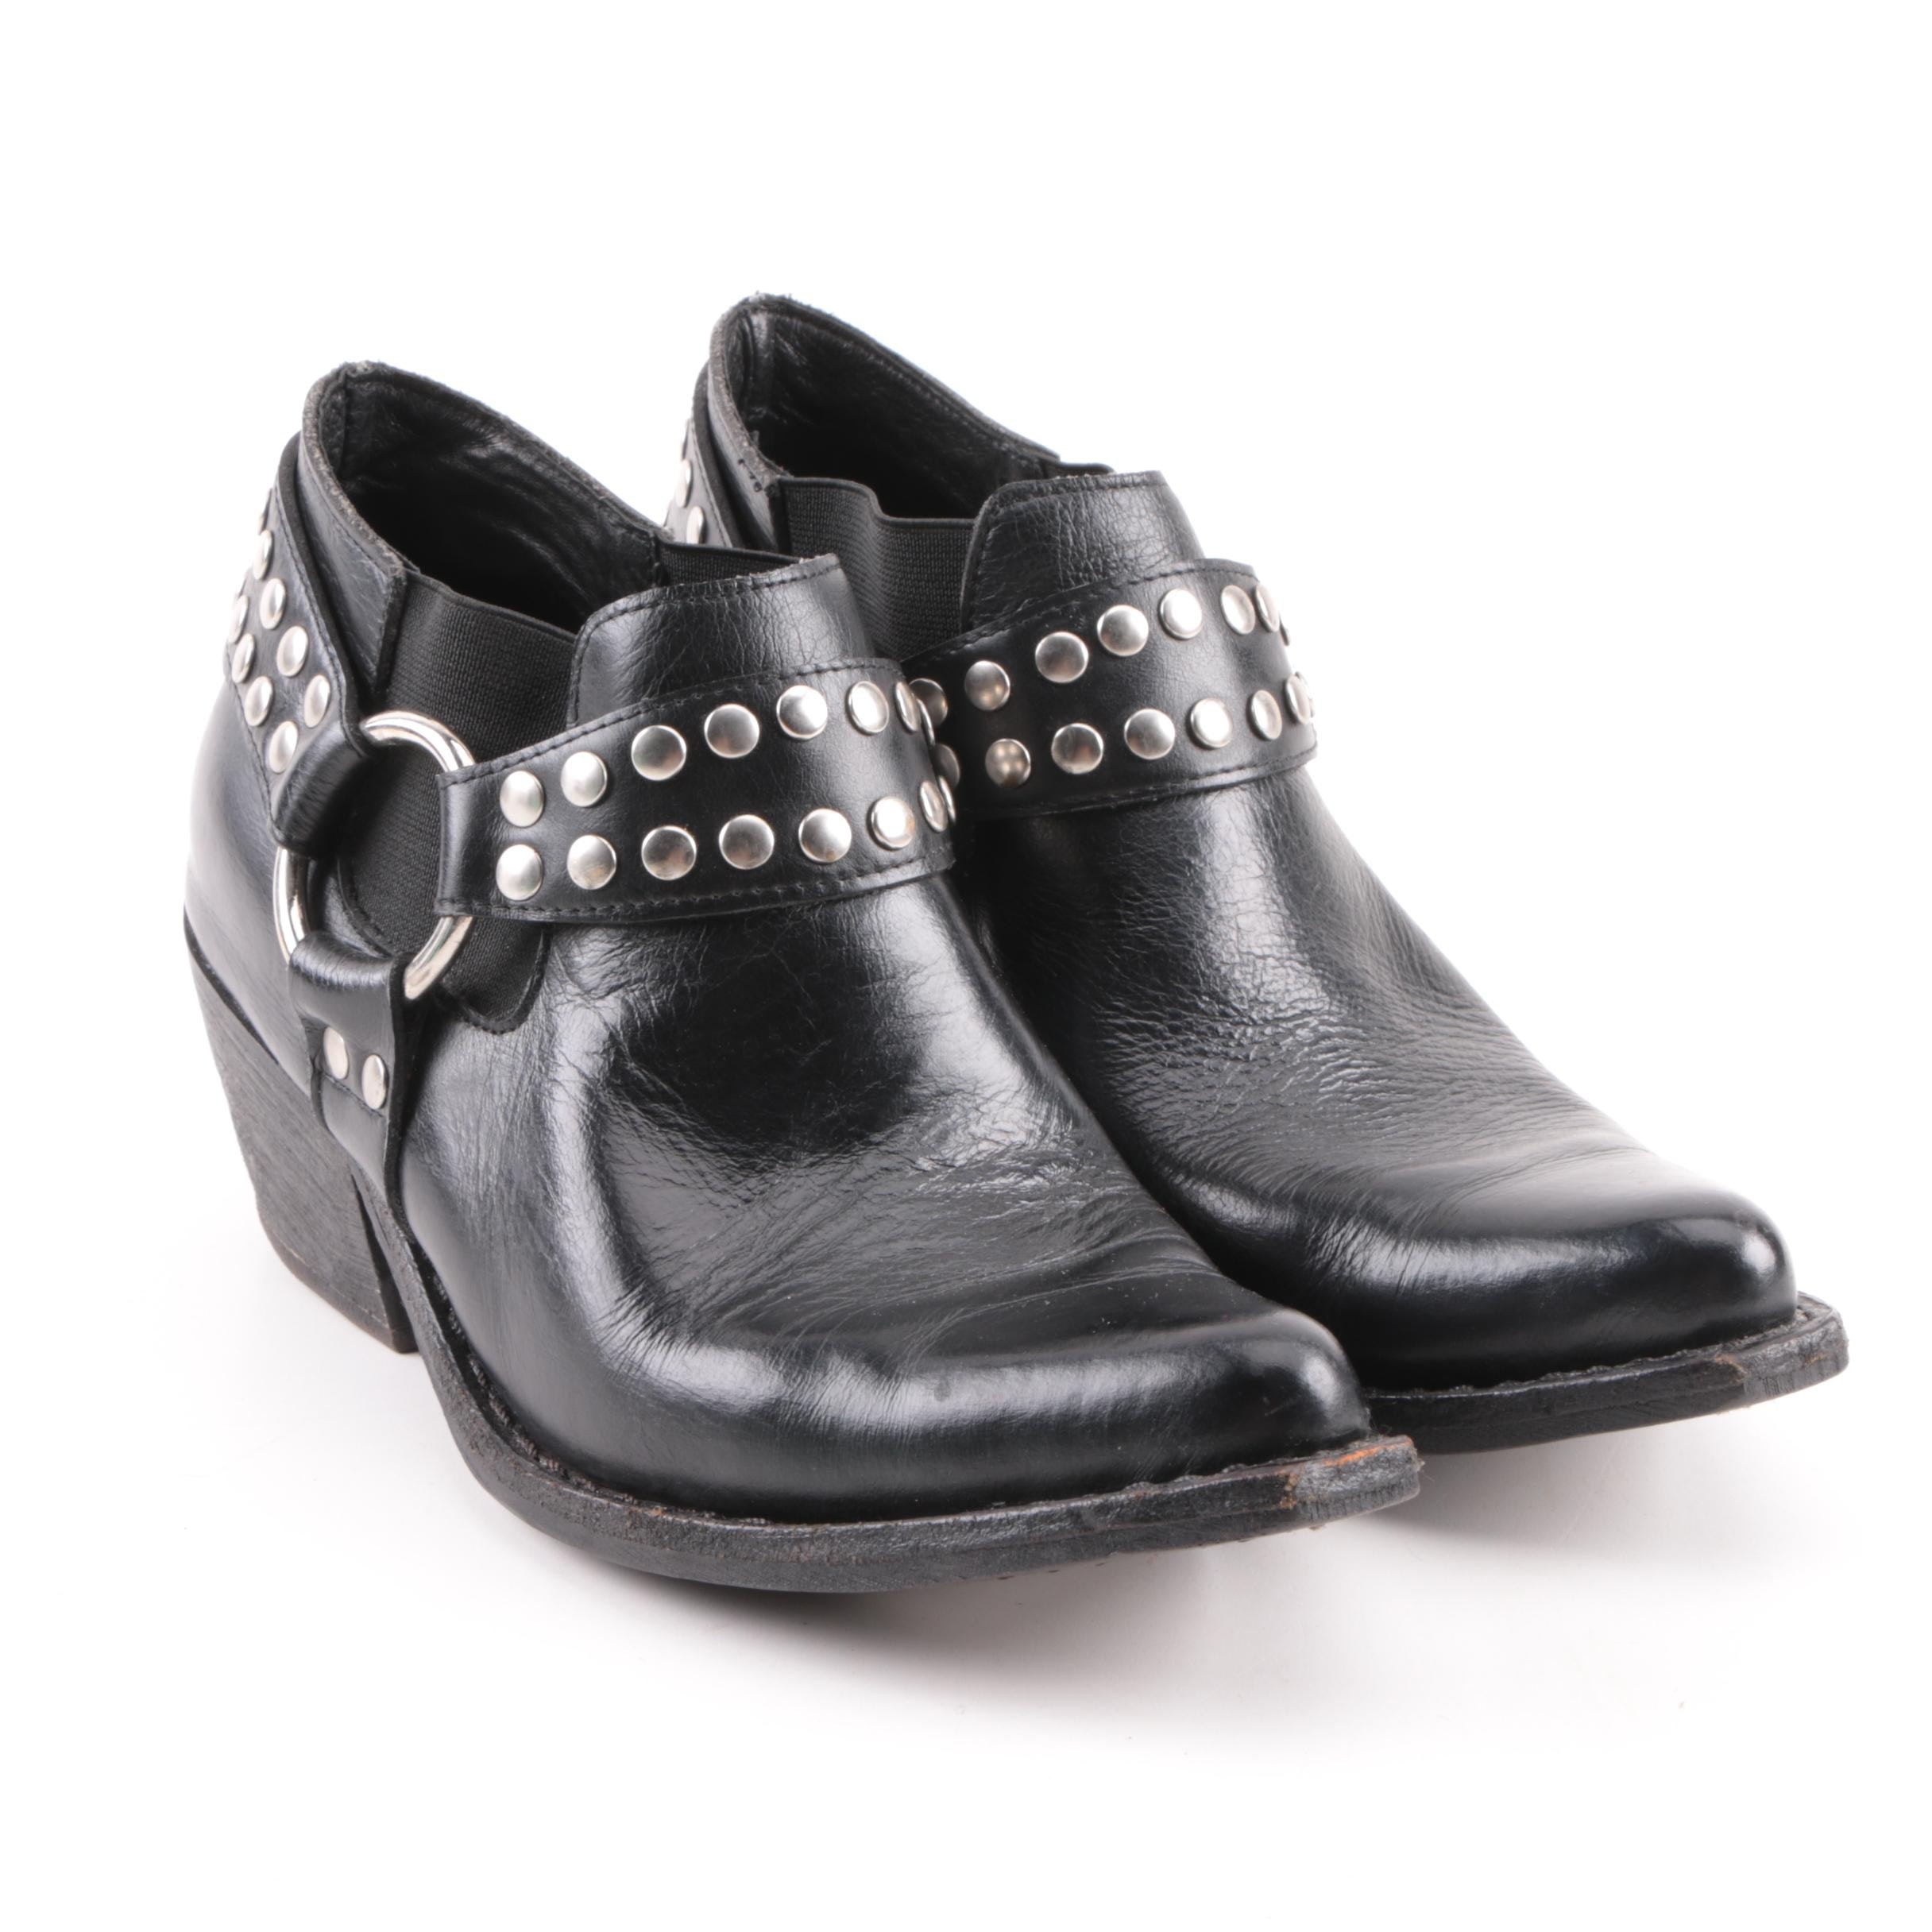 Women's Jeffrey Campbell Black Leather Harness Strap Booties